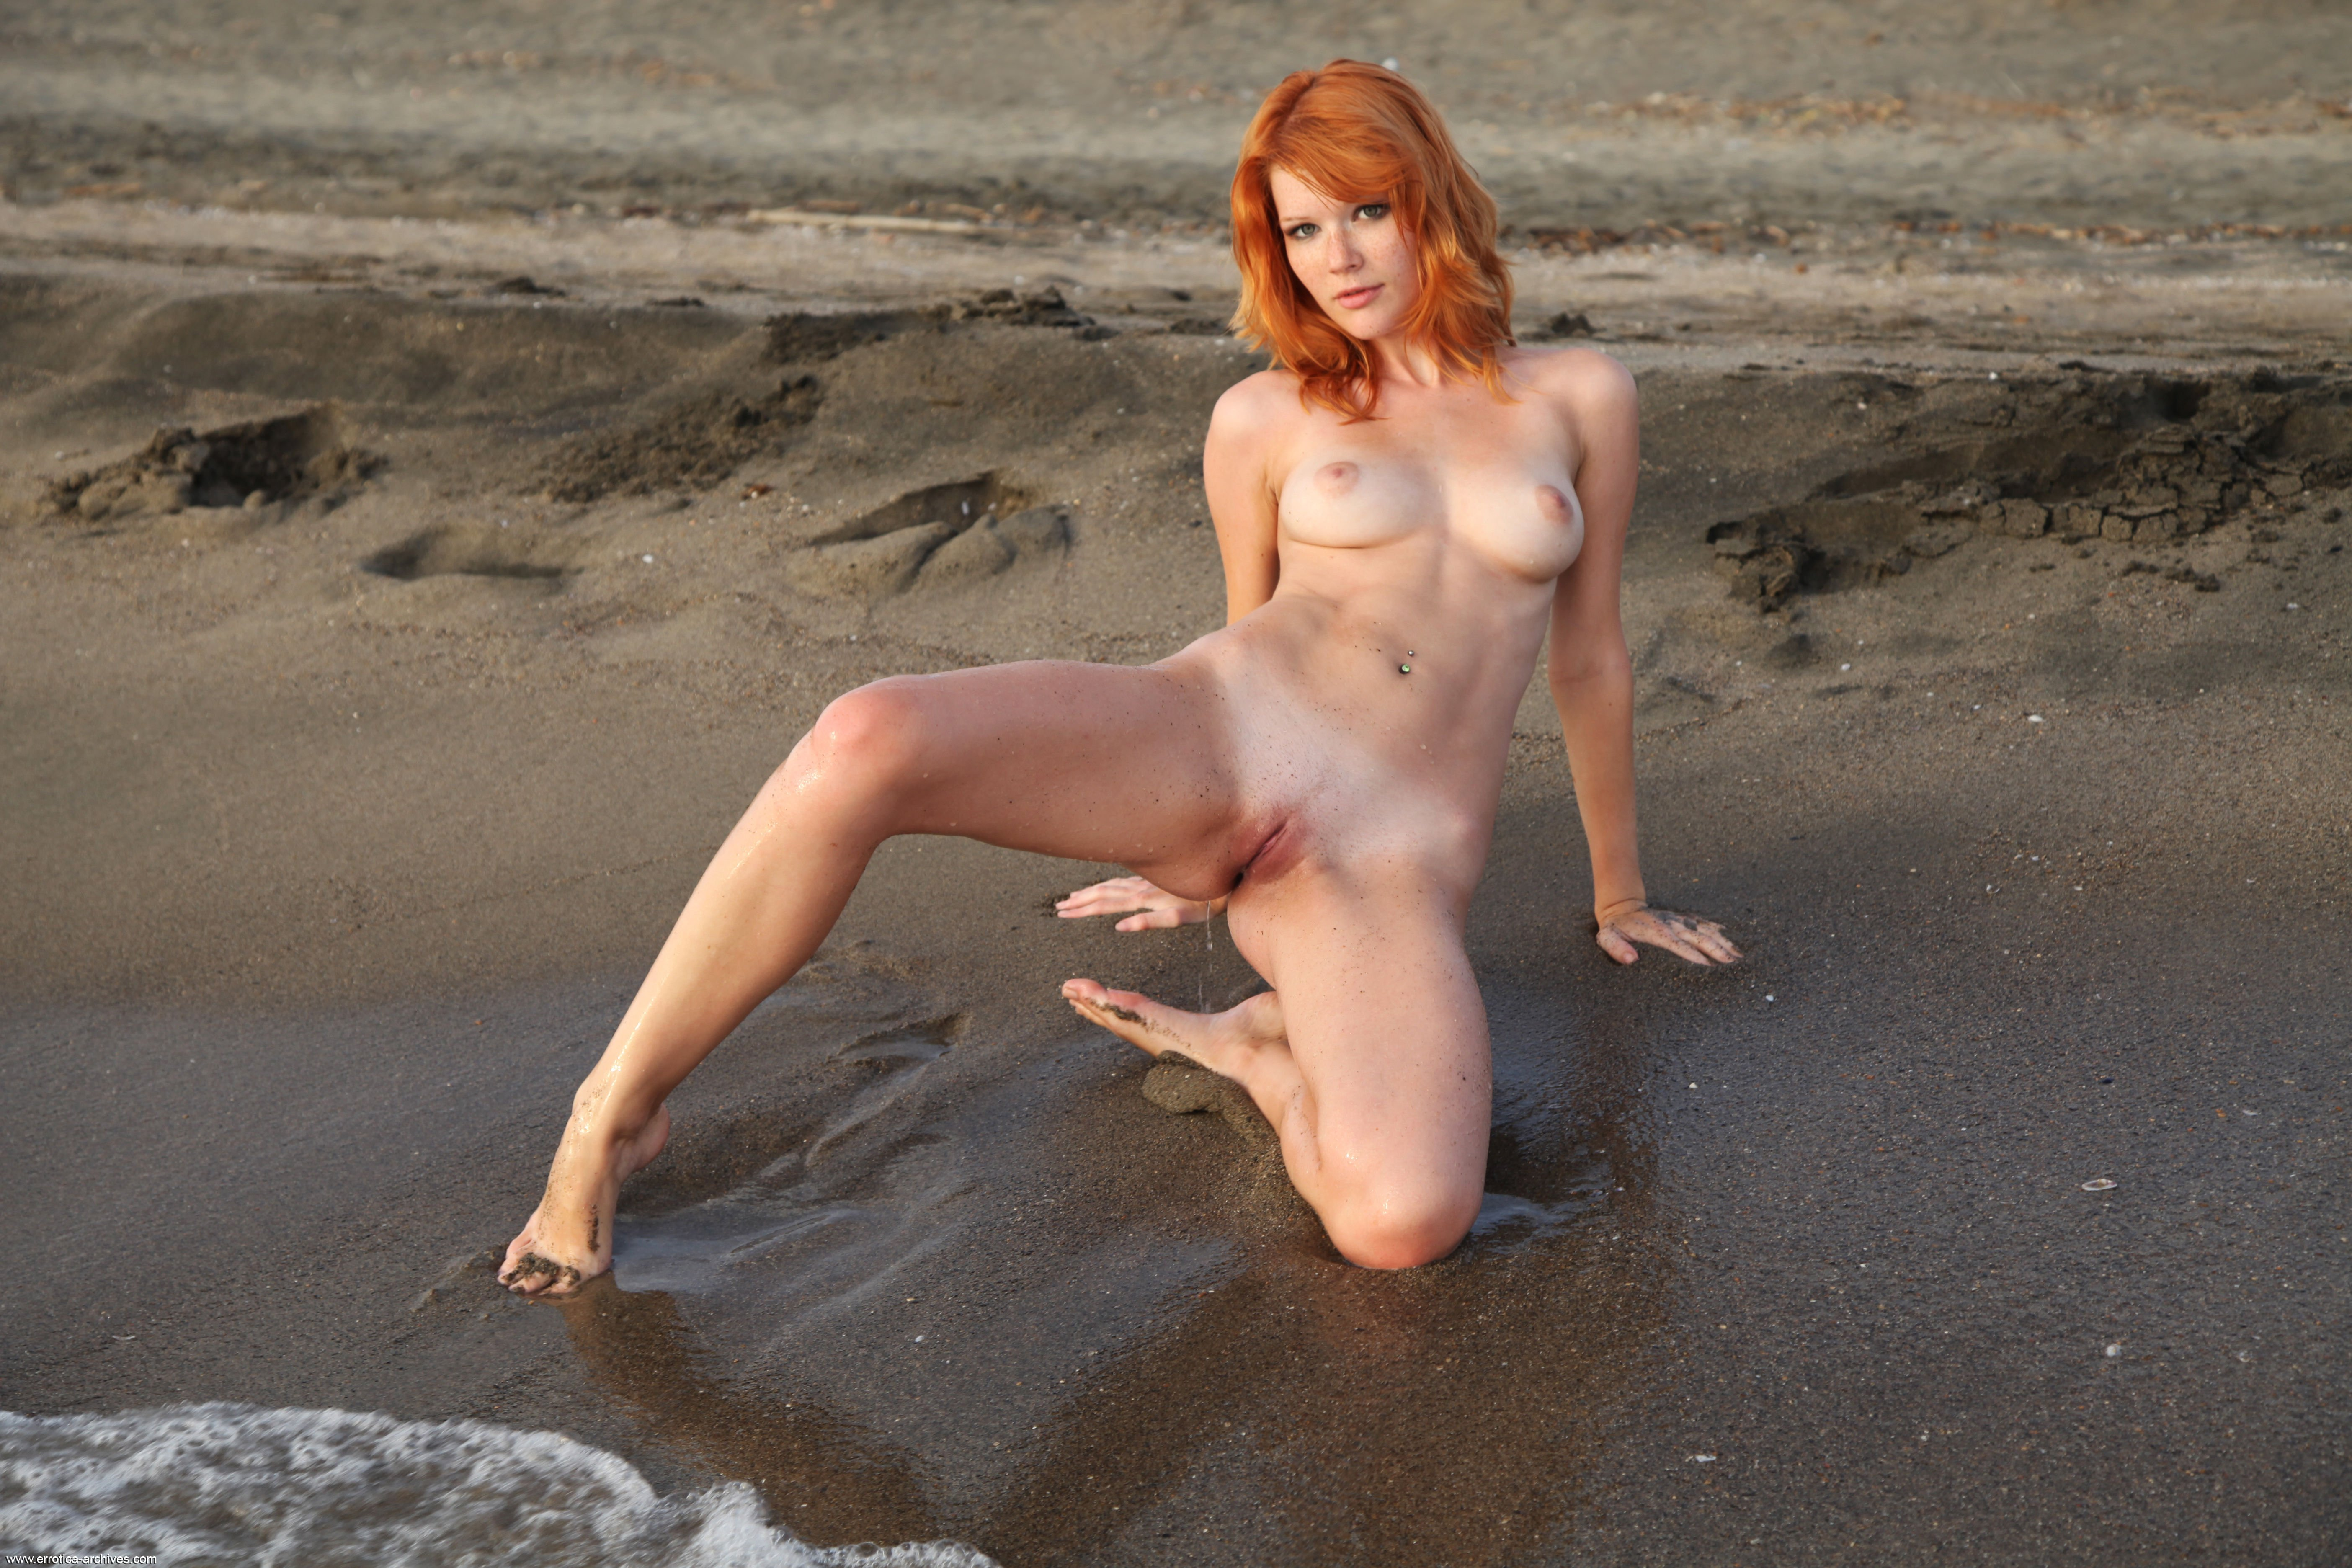 Naked feet with red nail polish in the sand on the beach